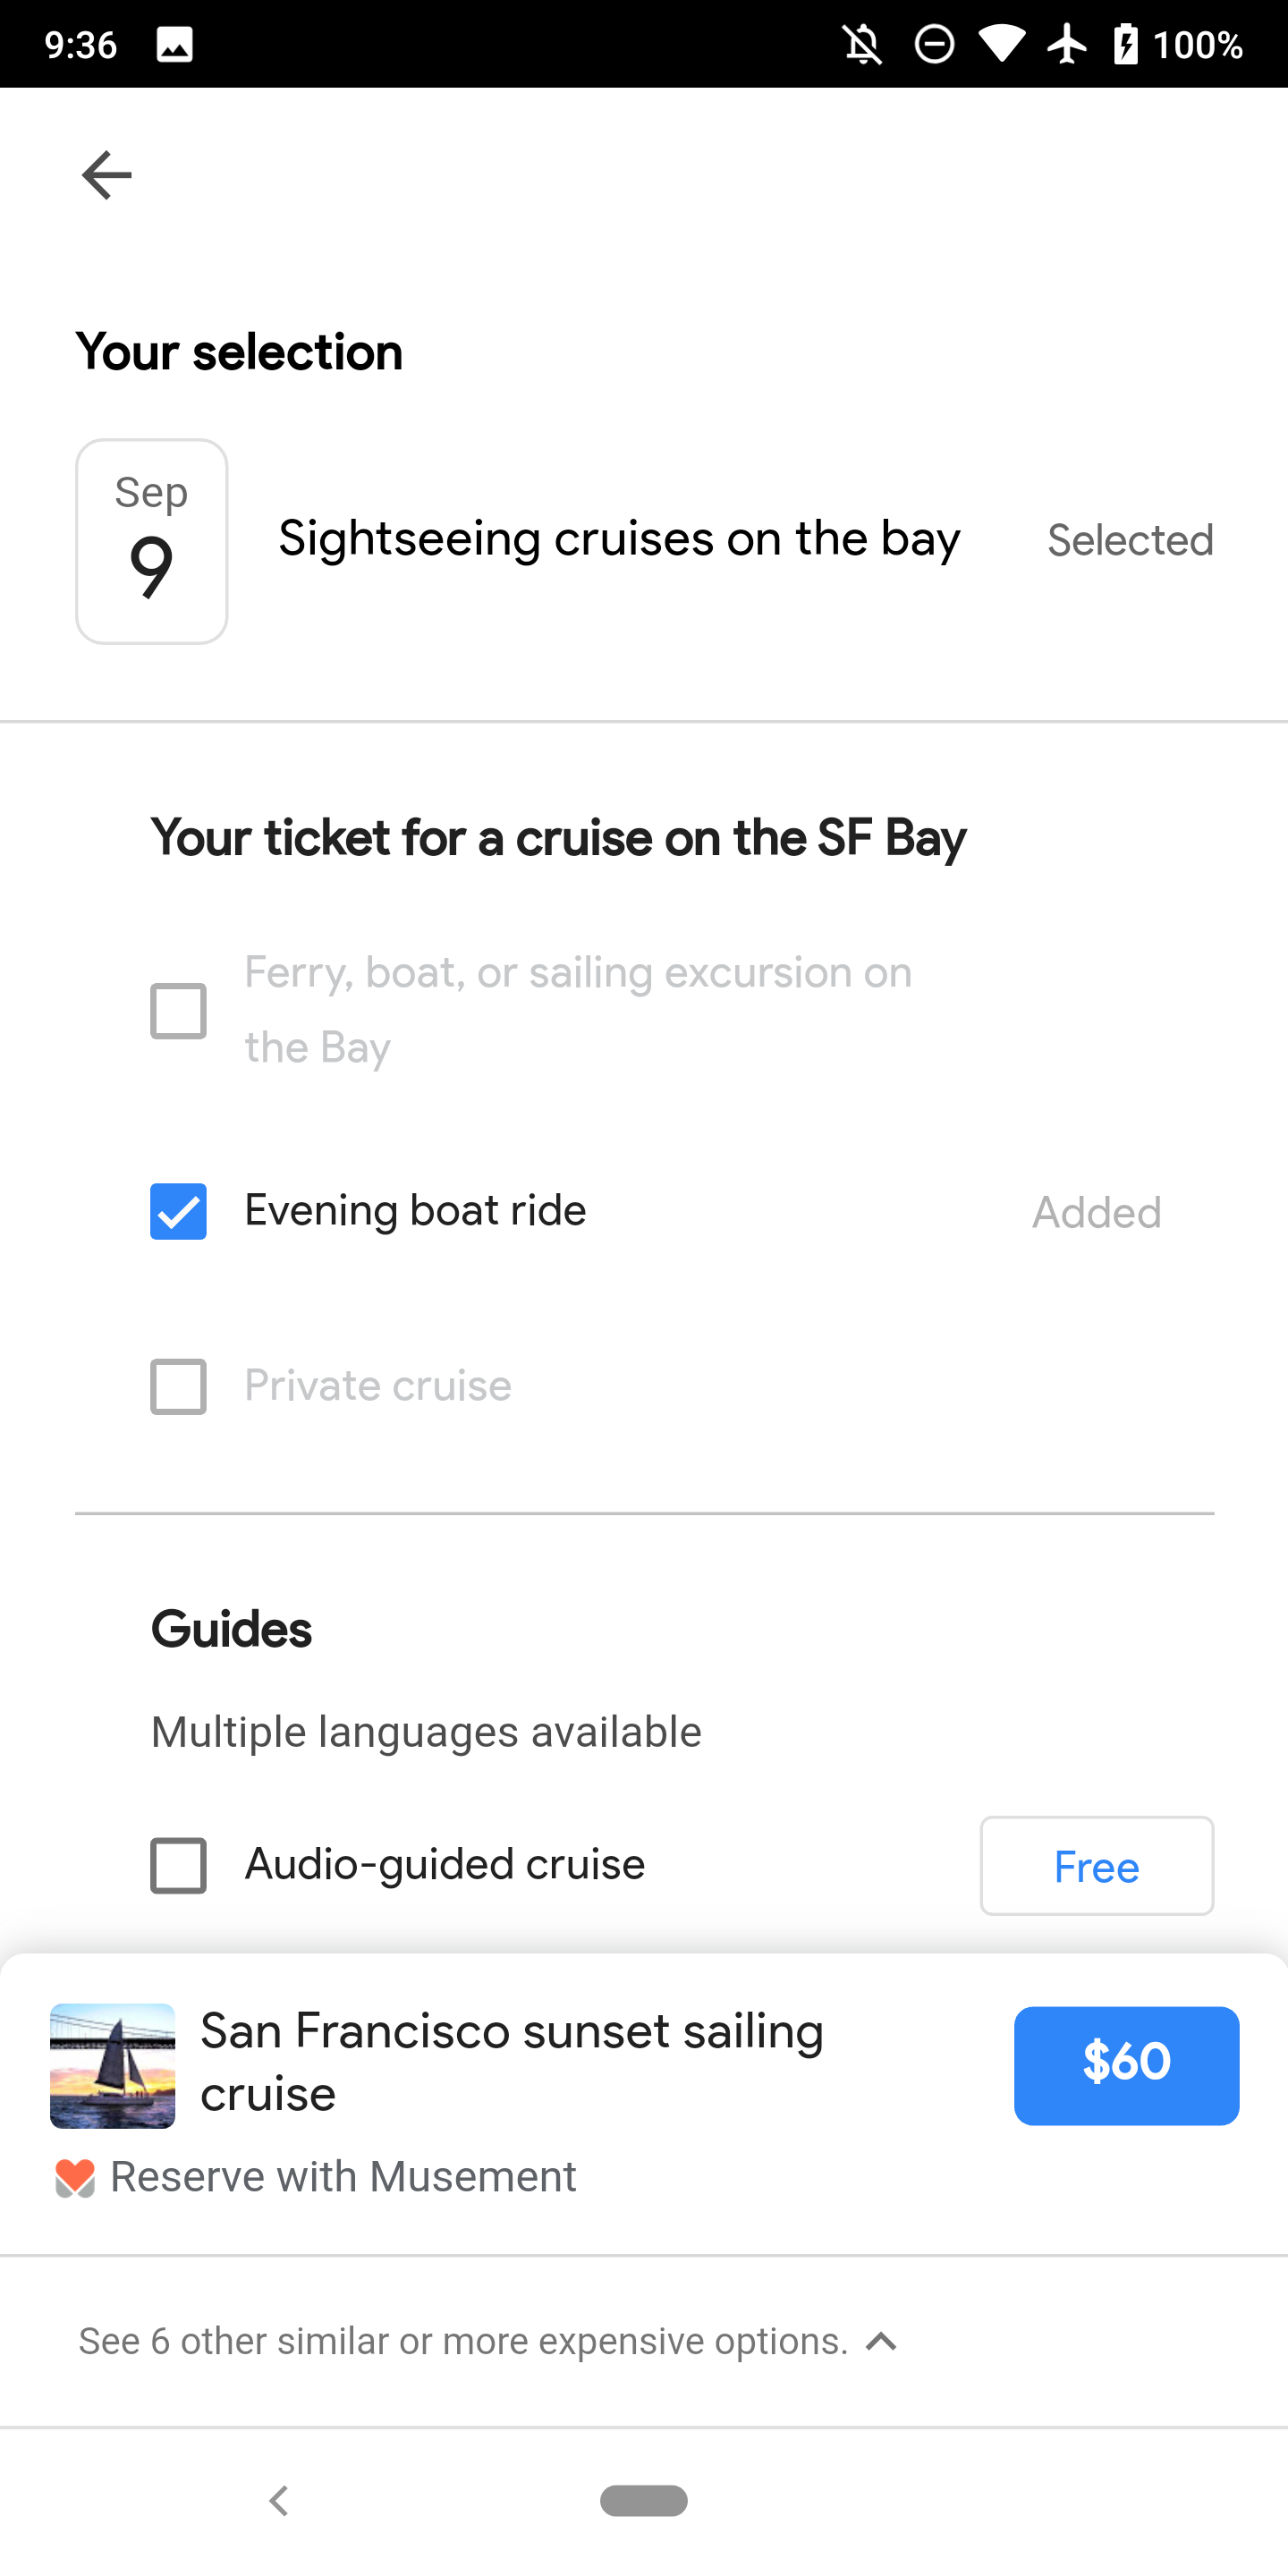 Touring Bird by Google Area 120 helps travelers find and customize